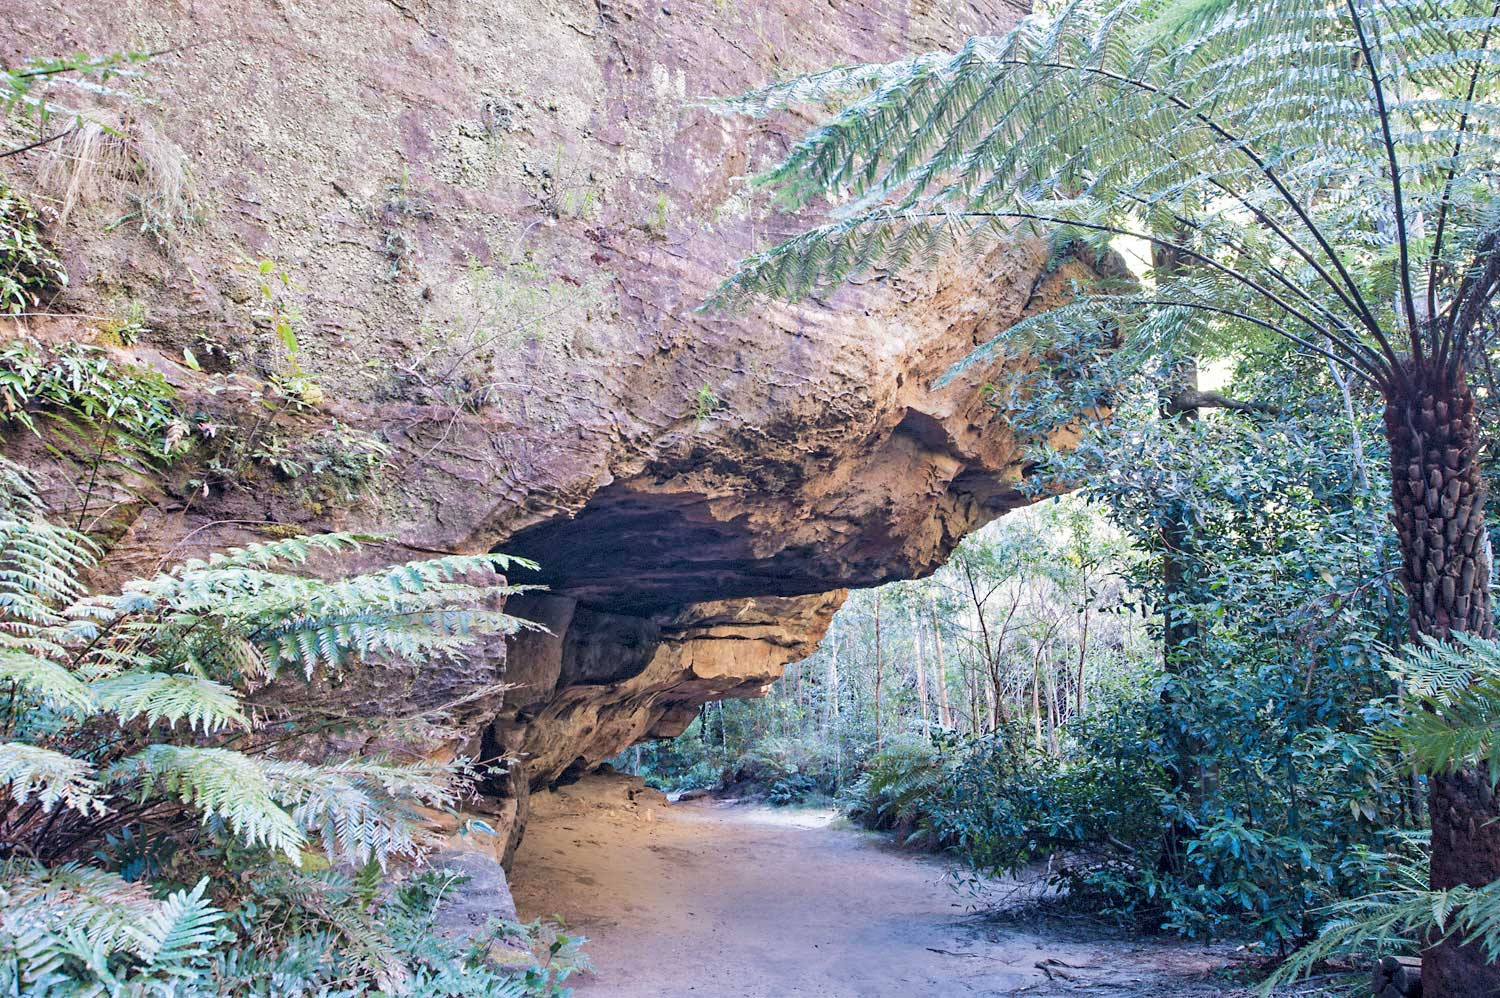 Warren-Hinder-LR-Cave-with-Fern.jpg